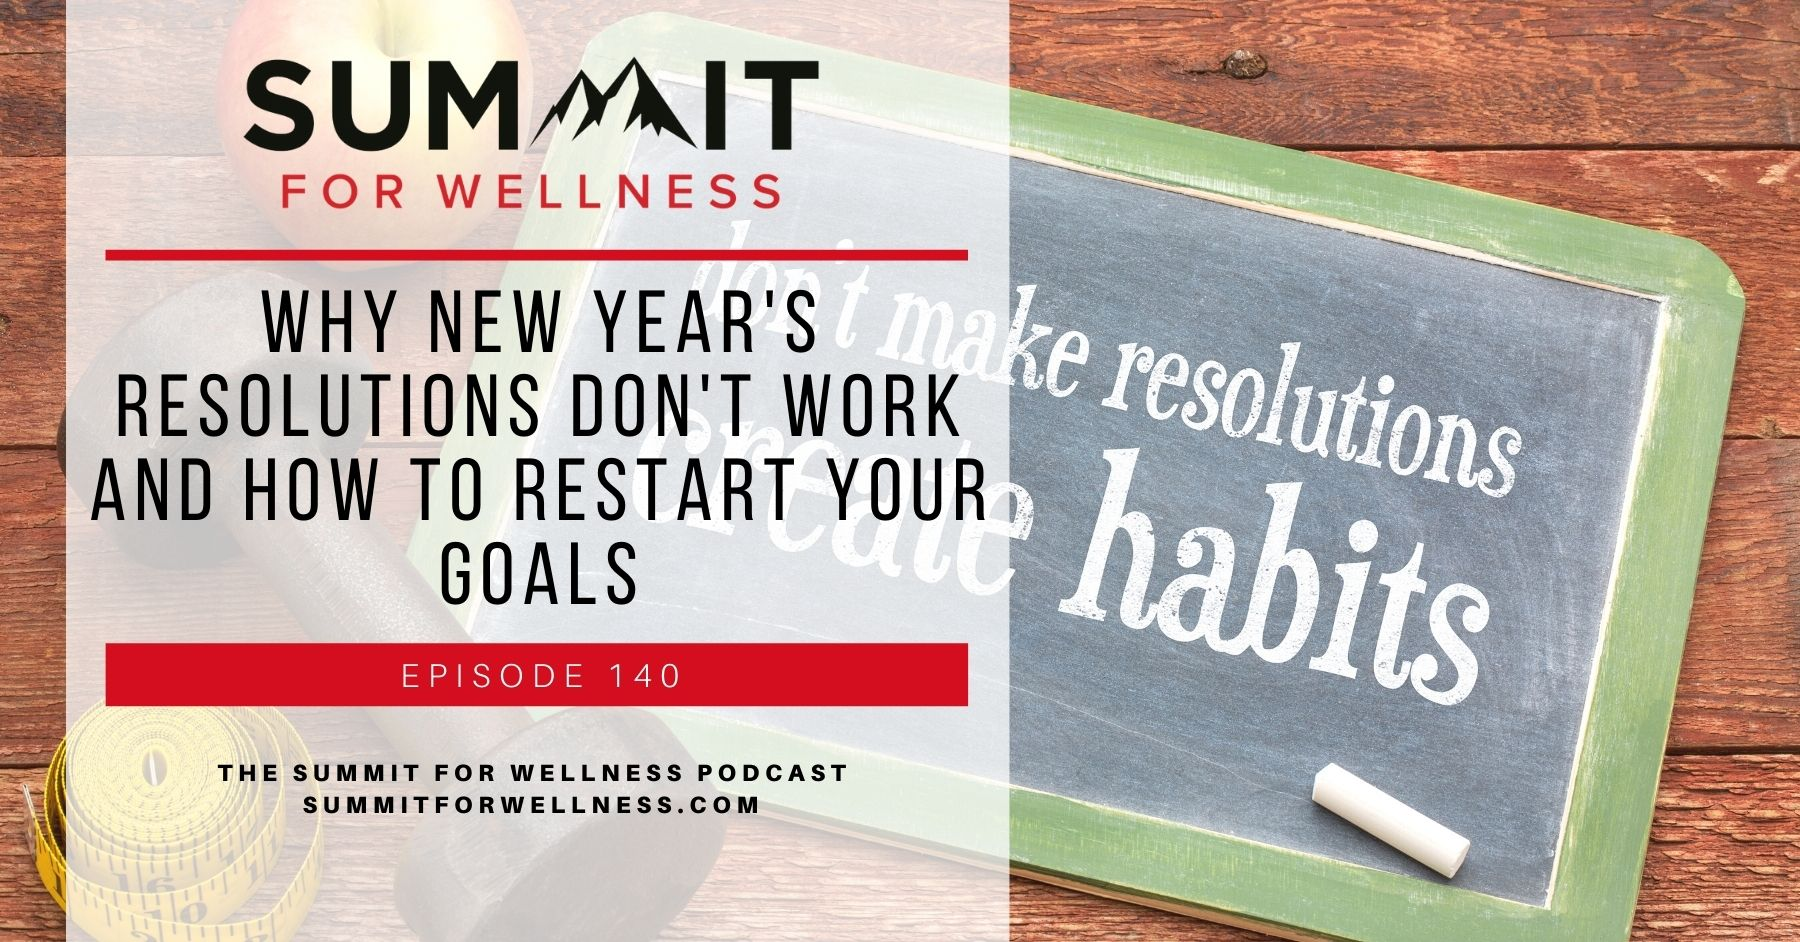 Learn why New Year's Resolutions don't work, and how to make actionable goals instead